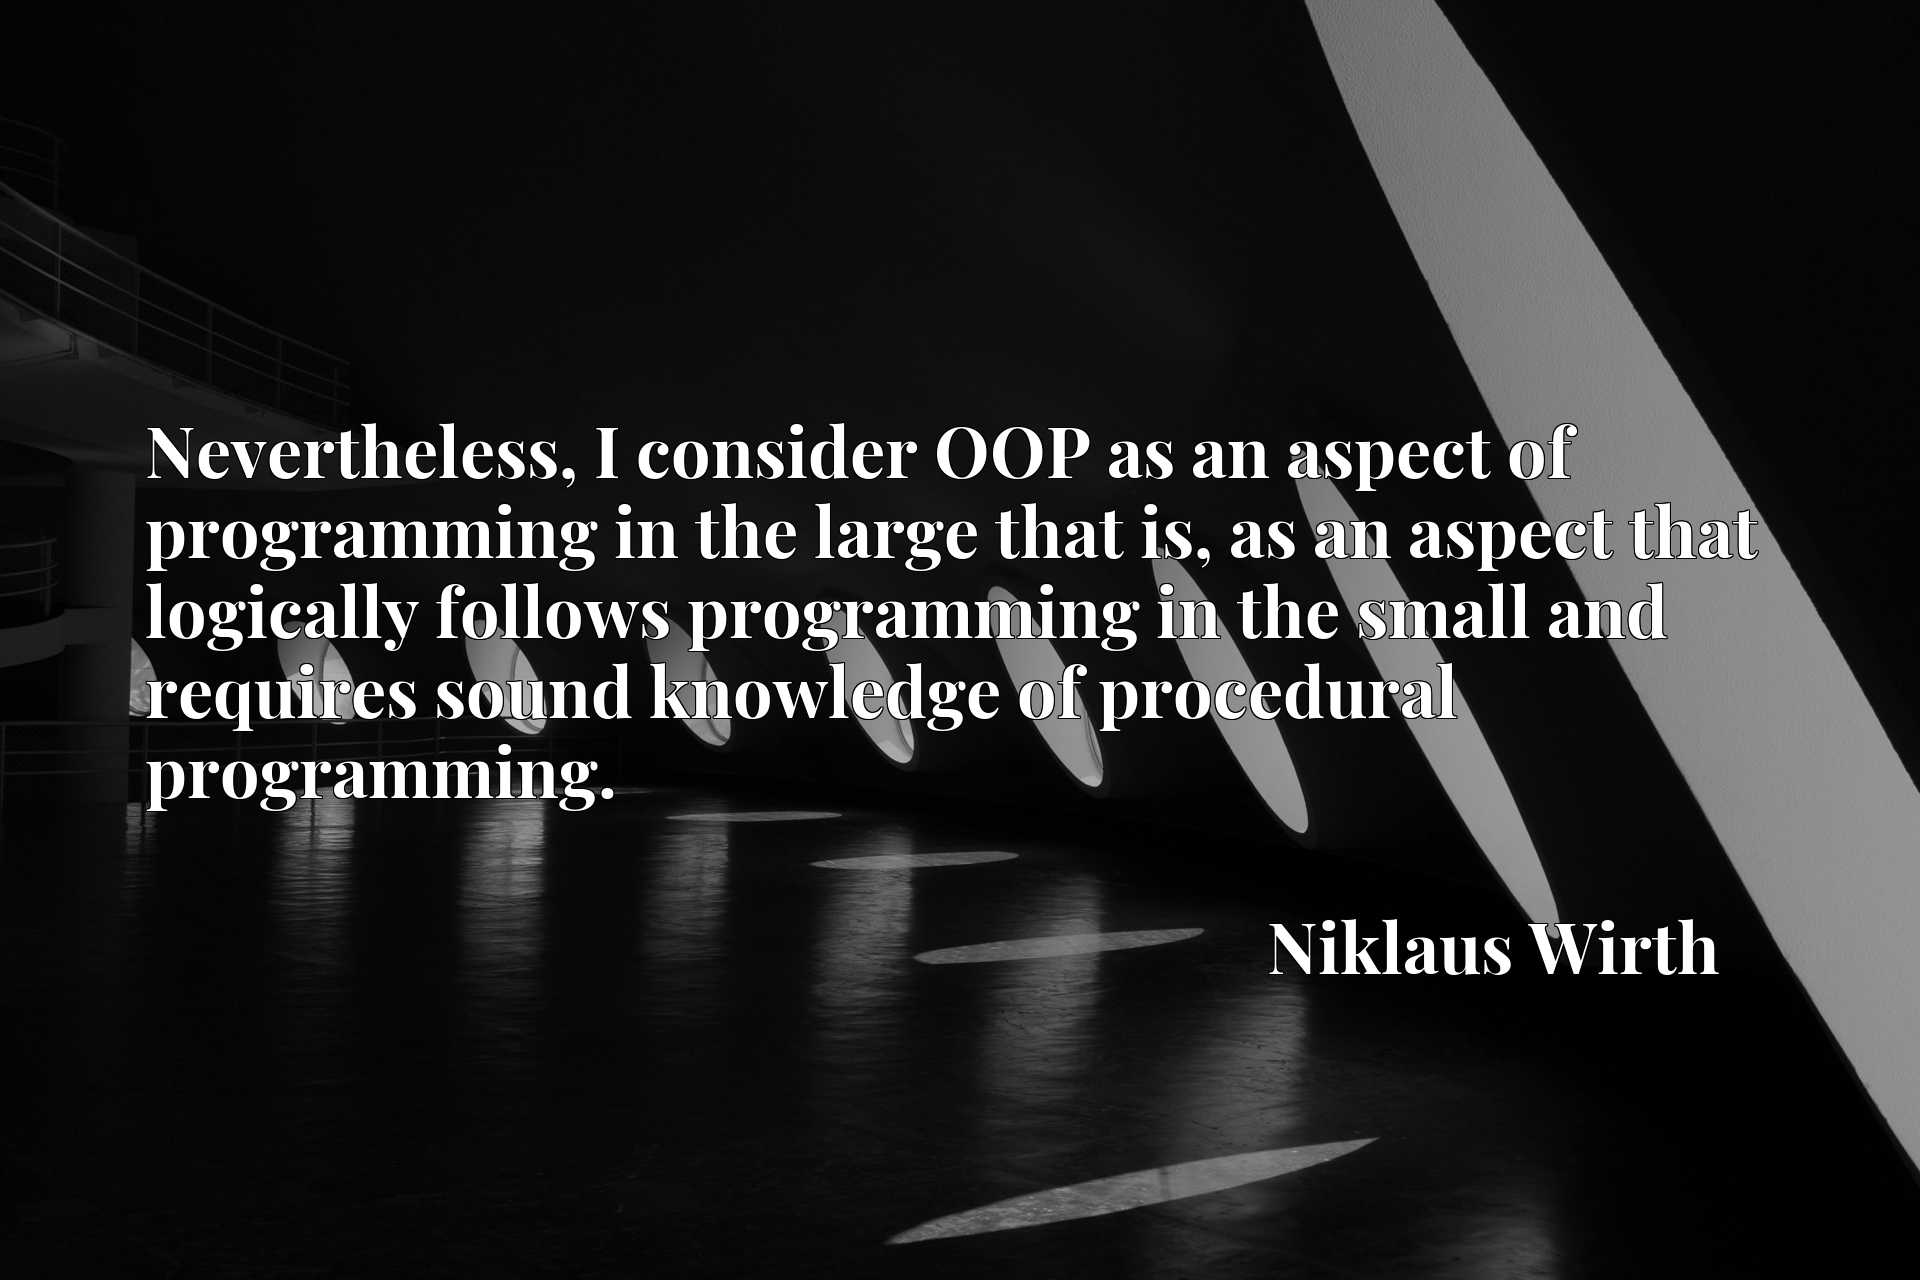 Quote Picture :Nevertheless, I consider OOP as an aspect of programming in the large that is, as an aspect that logically follows programming in the small and requires sound knowledge of procedural programming.